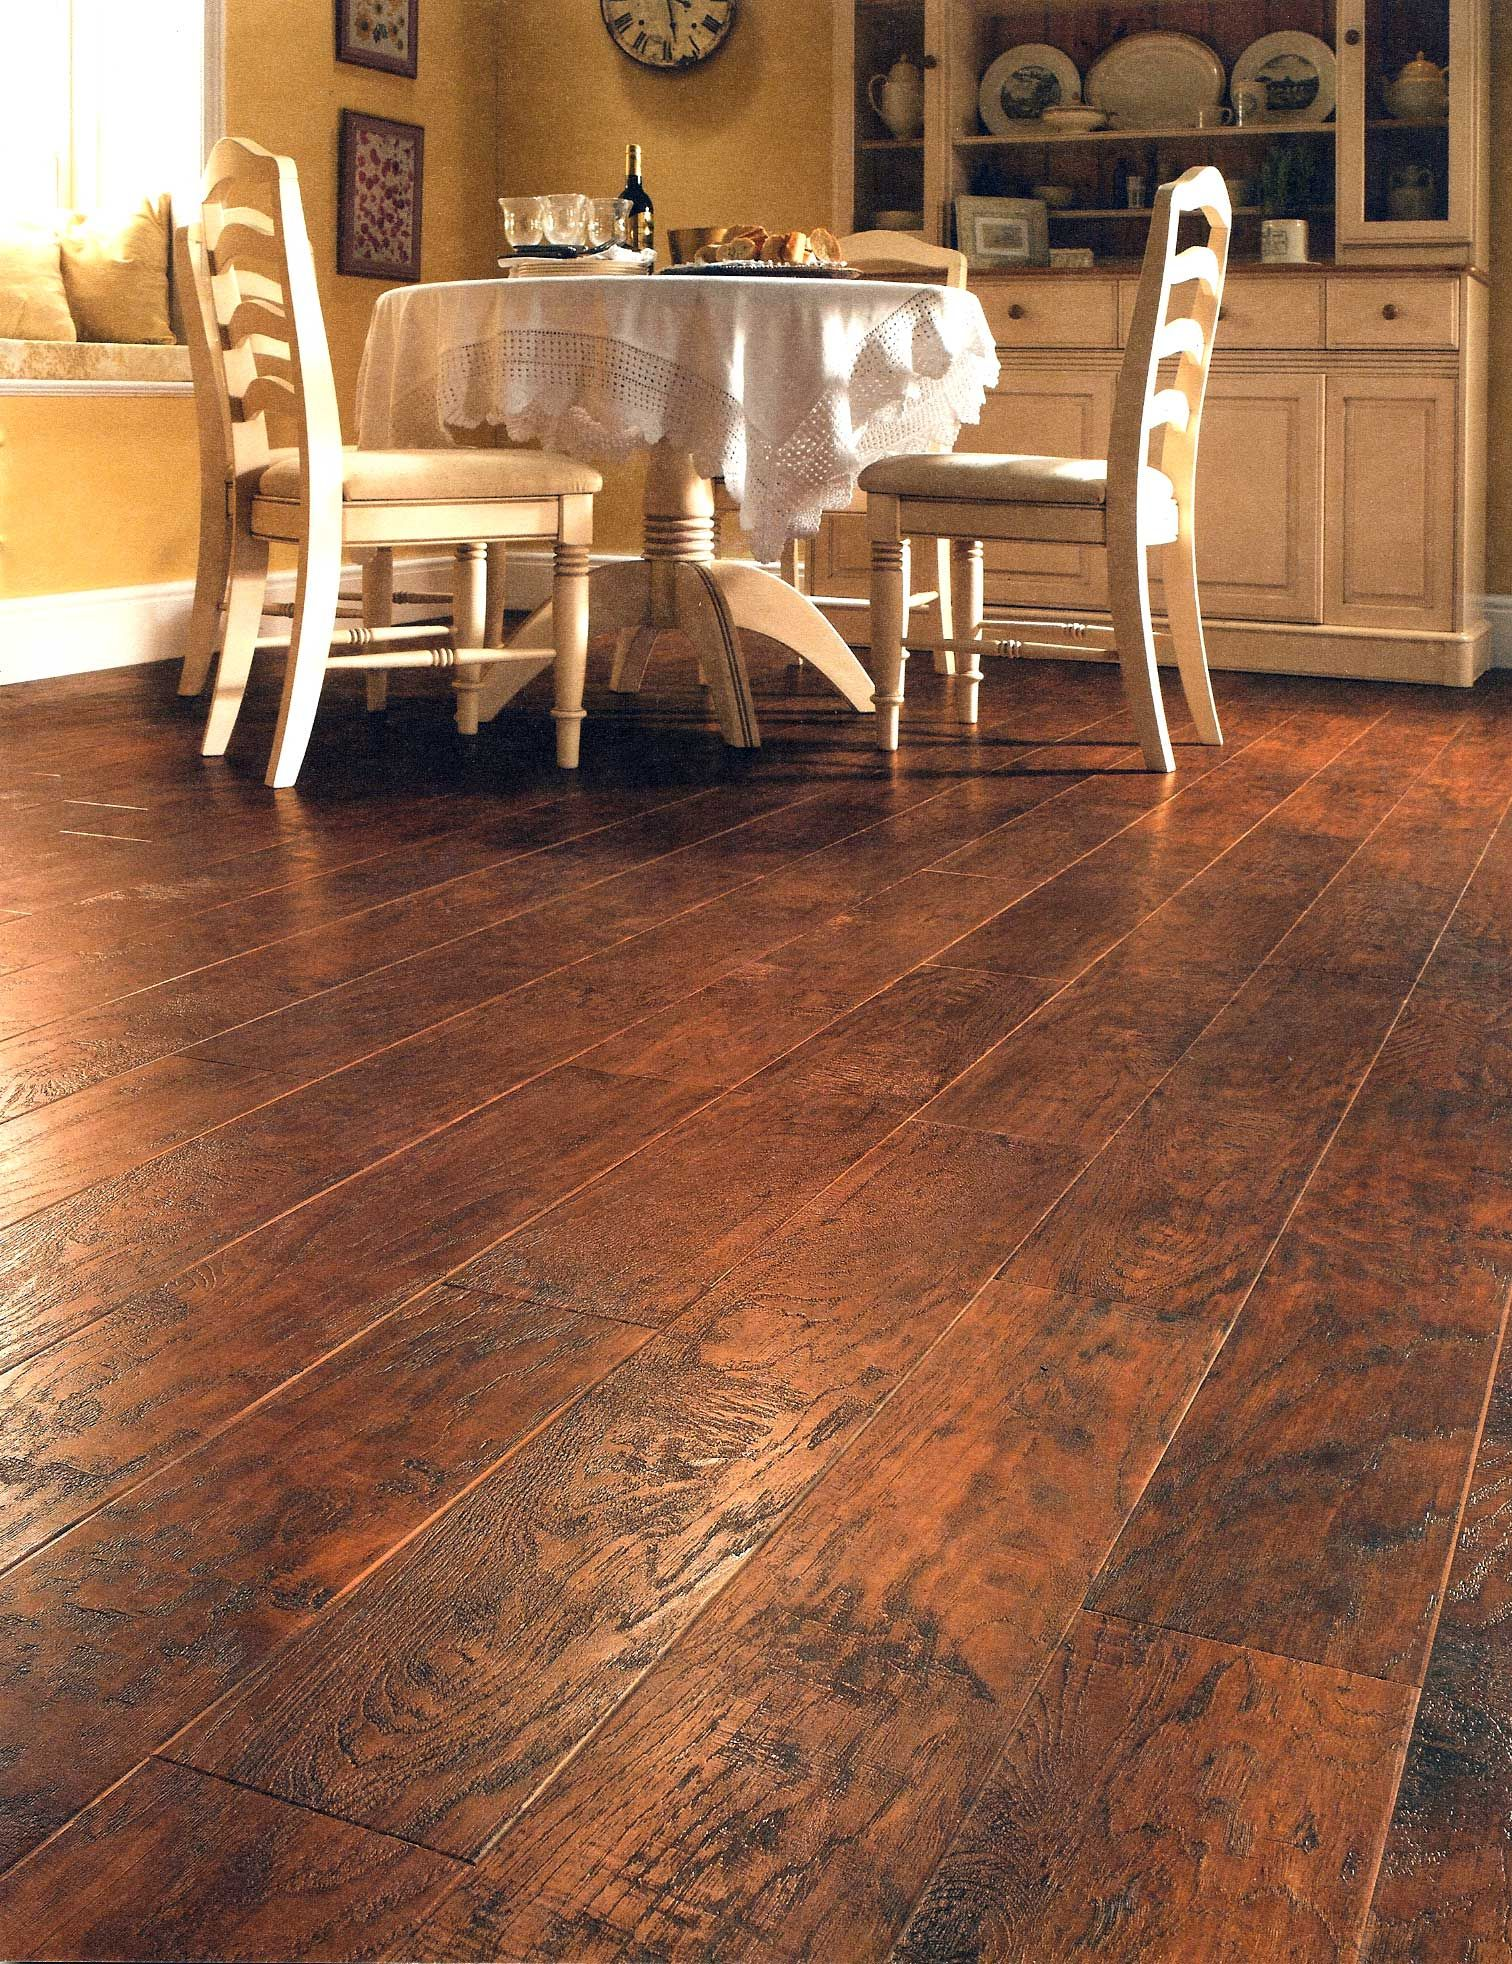 Vinyl Flooring For Kitchens Vinyl Flooring Edgemont Floors Is Dedicated To Make Your Home